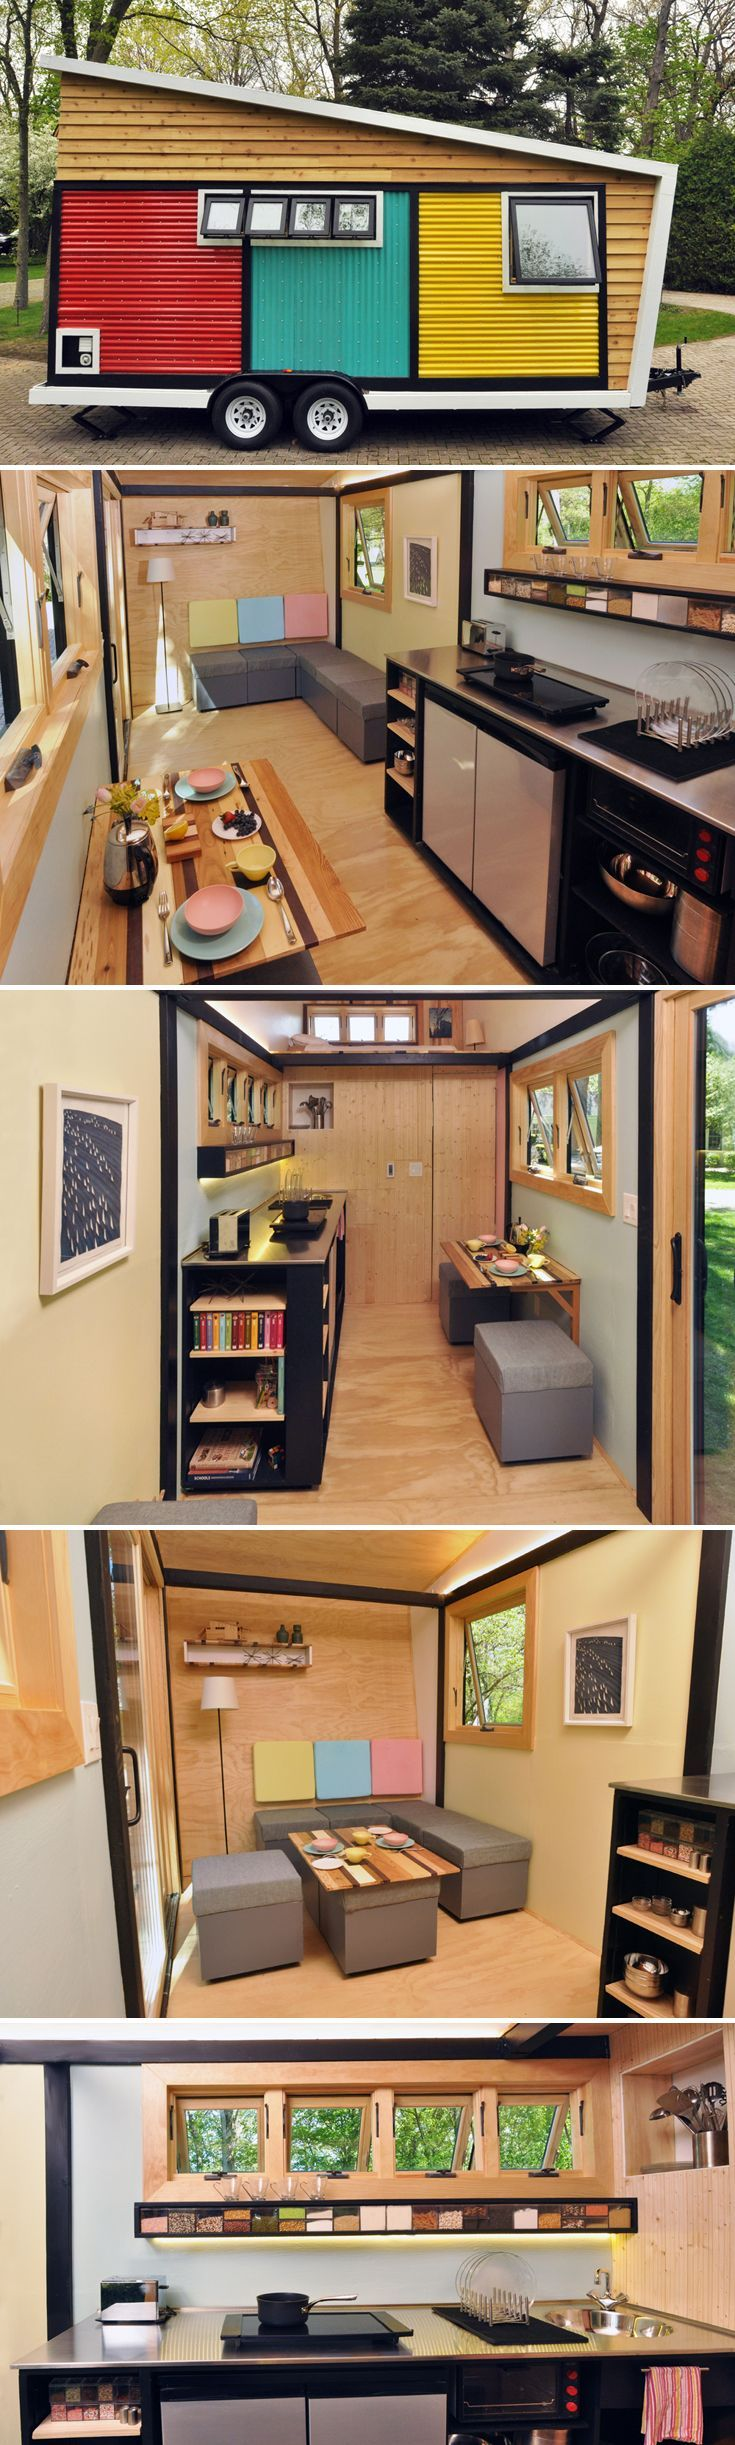 Box Tiny Home The Toy Box Tiny Home is a whimsical, colorful tiny house that combines modern design with ecologically responsible materials.The Toy Box Tiny Home is a whimsical, colorful tiny house that combines modern design with ecologically responsible materials.